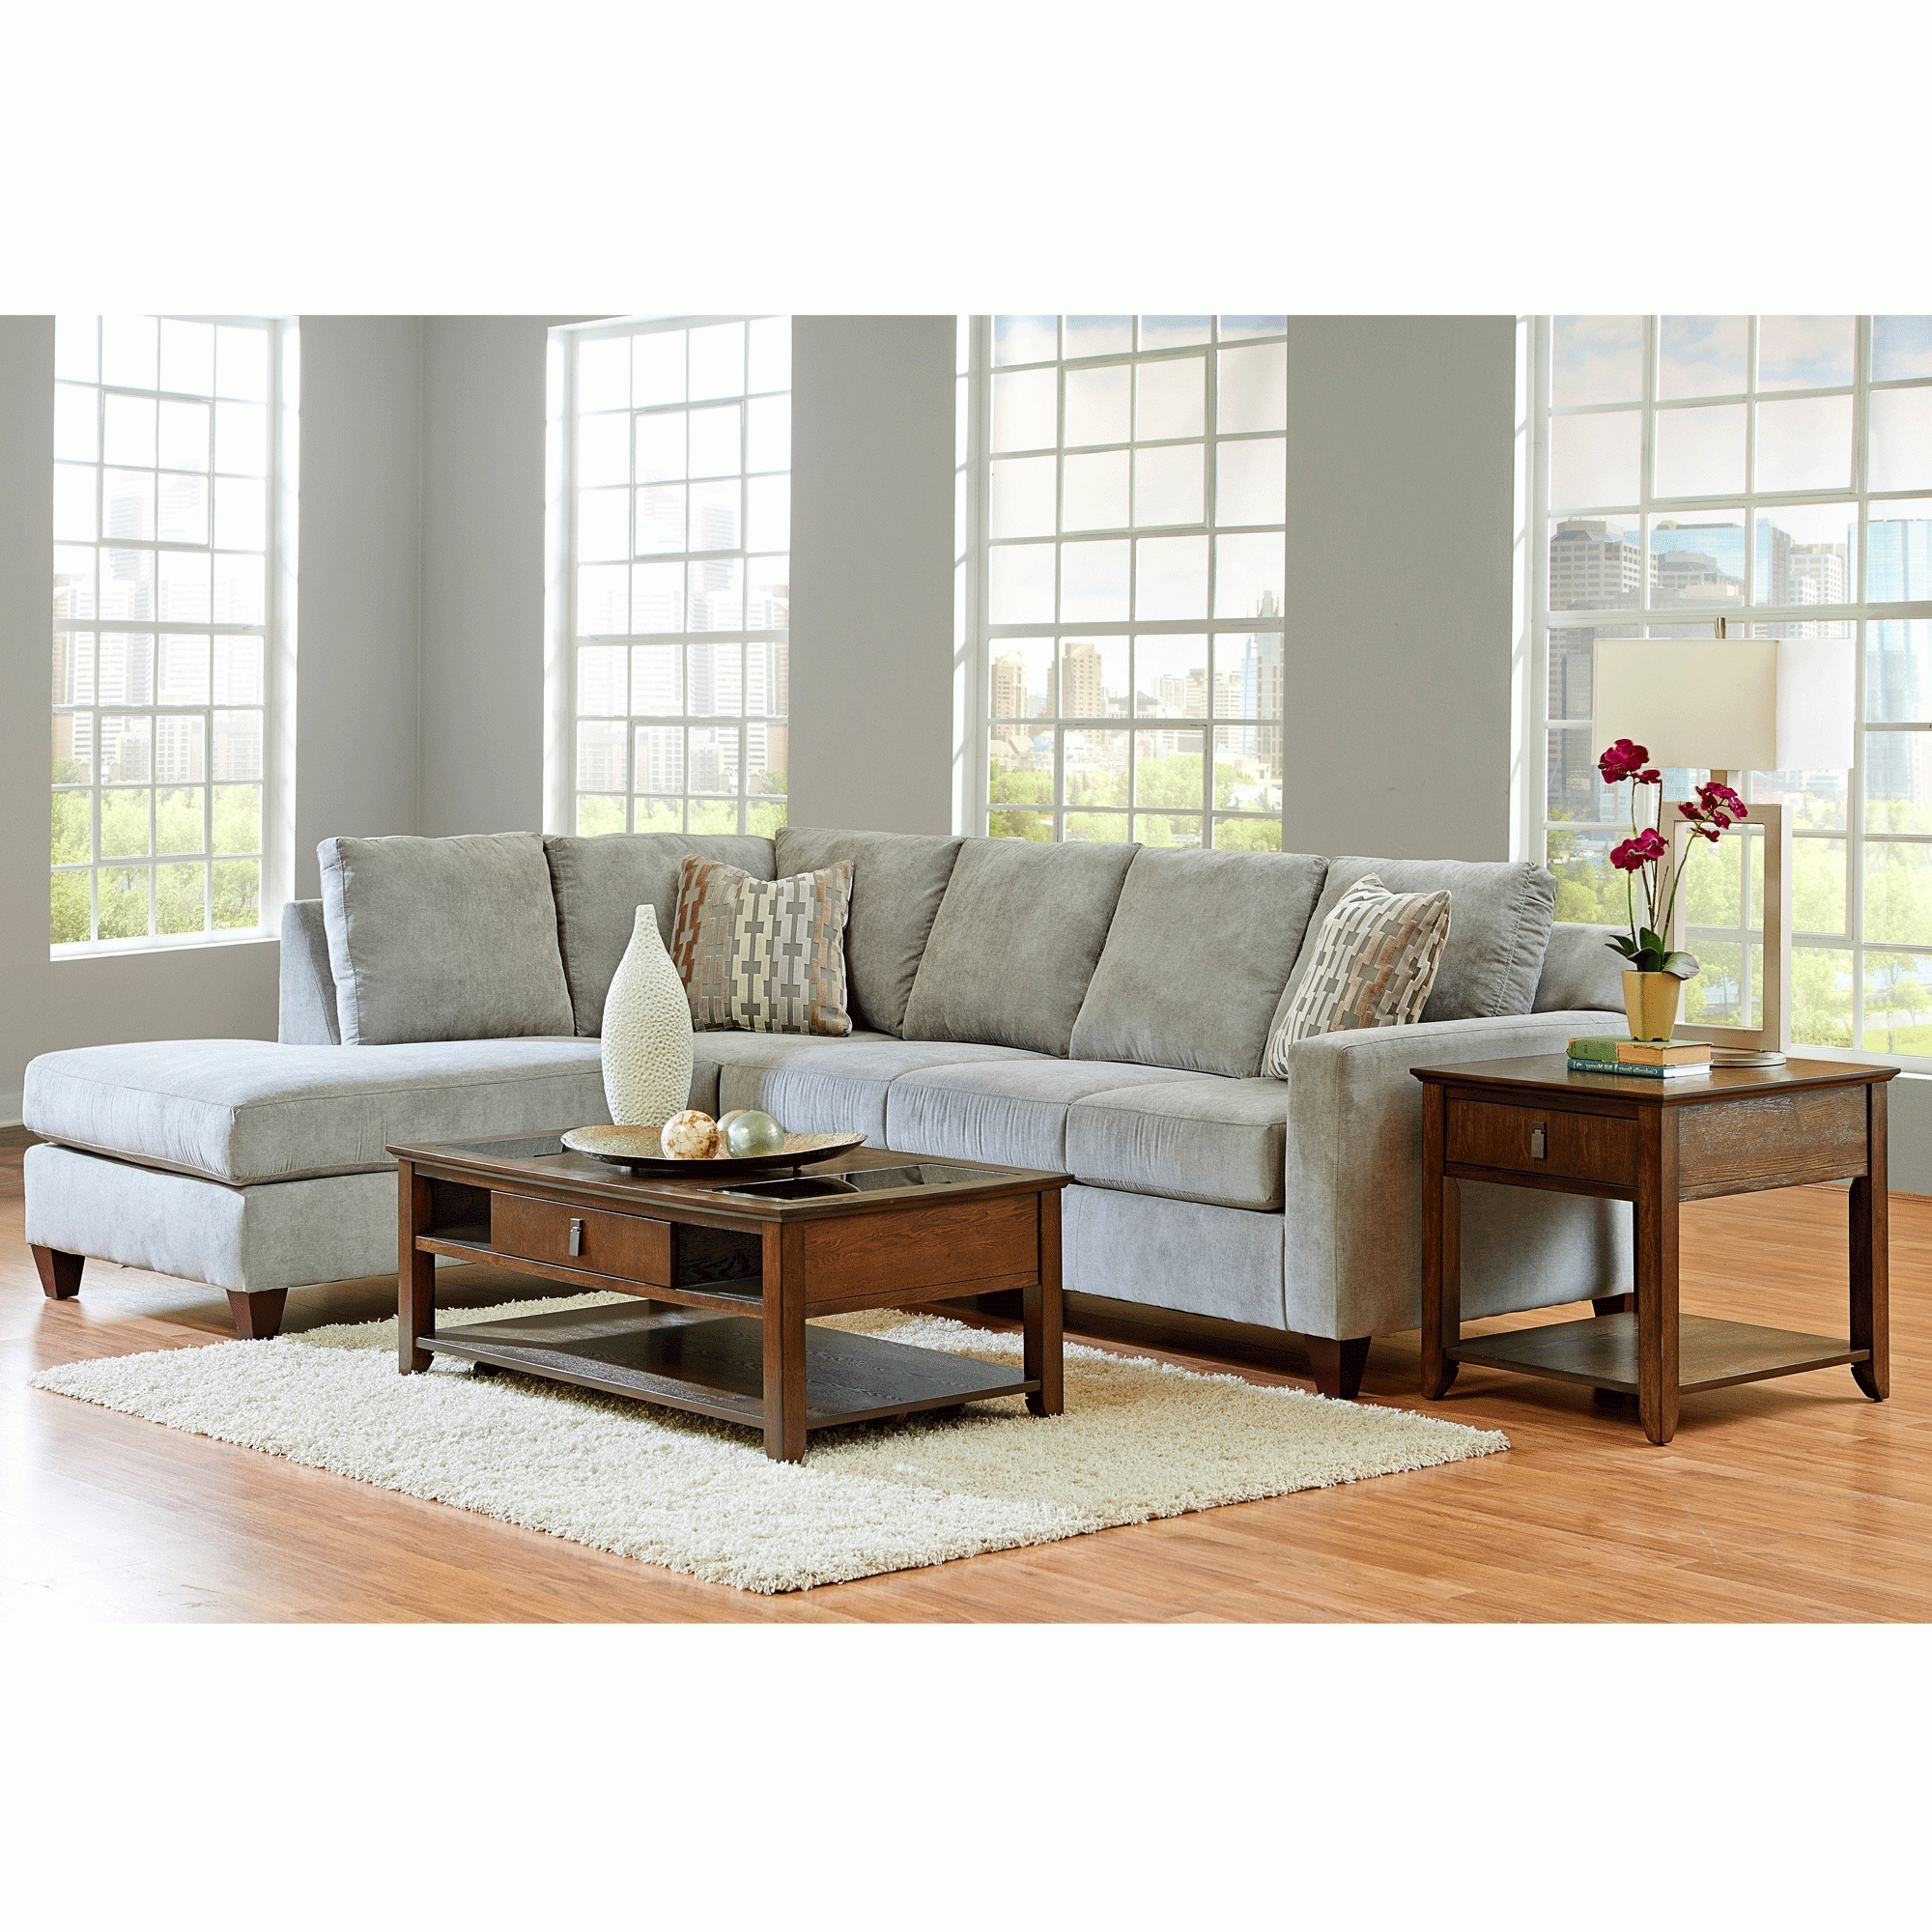 Sectional Couches – Bernie & Phyl's Furniture (View 3 of 20)